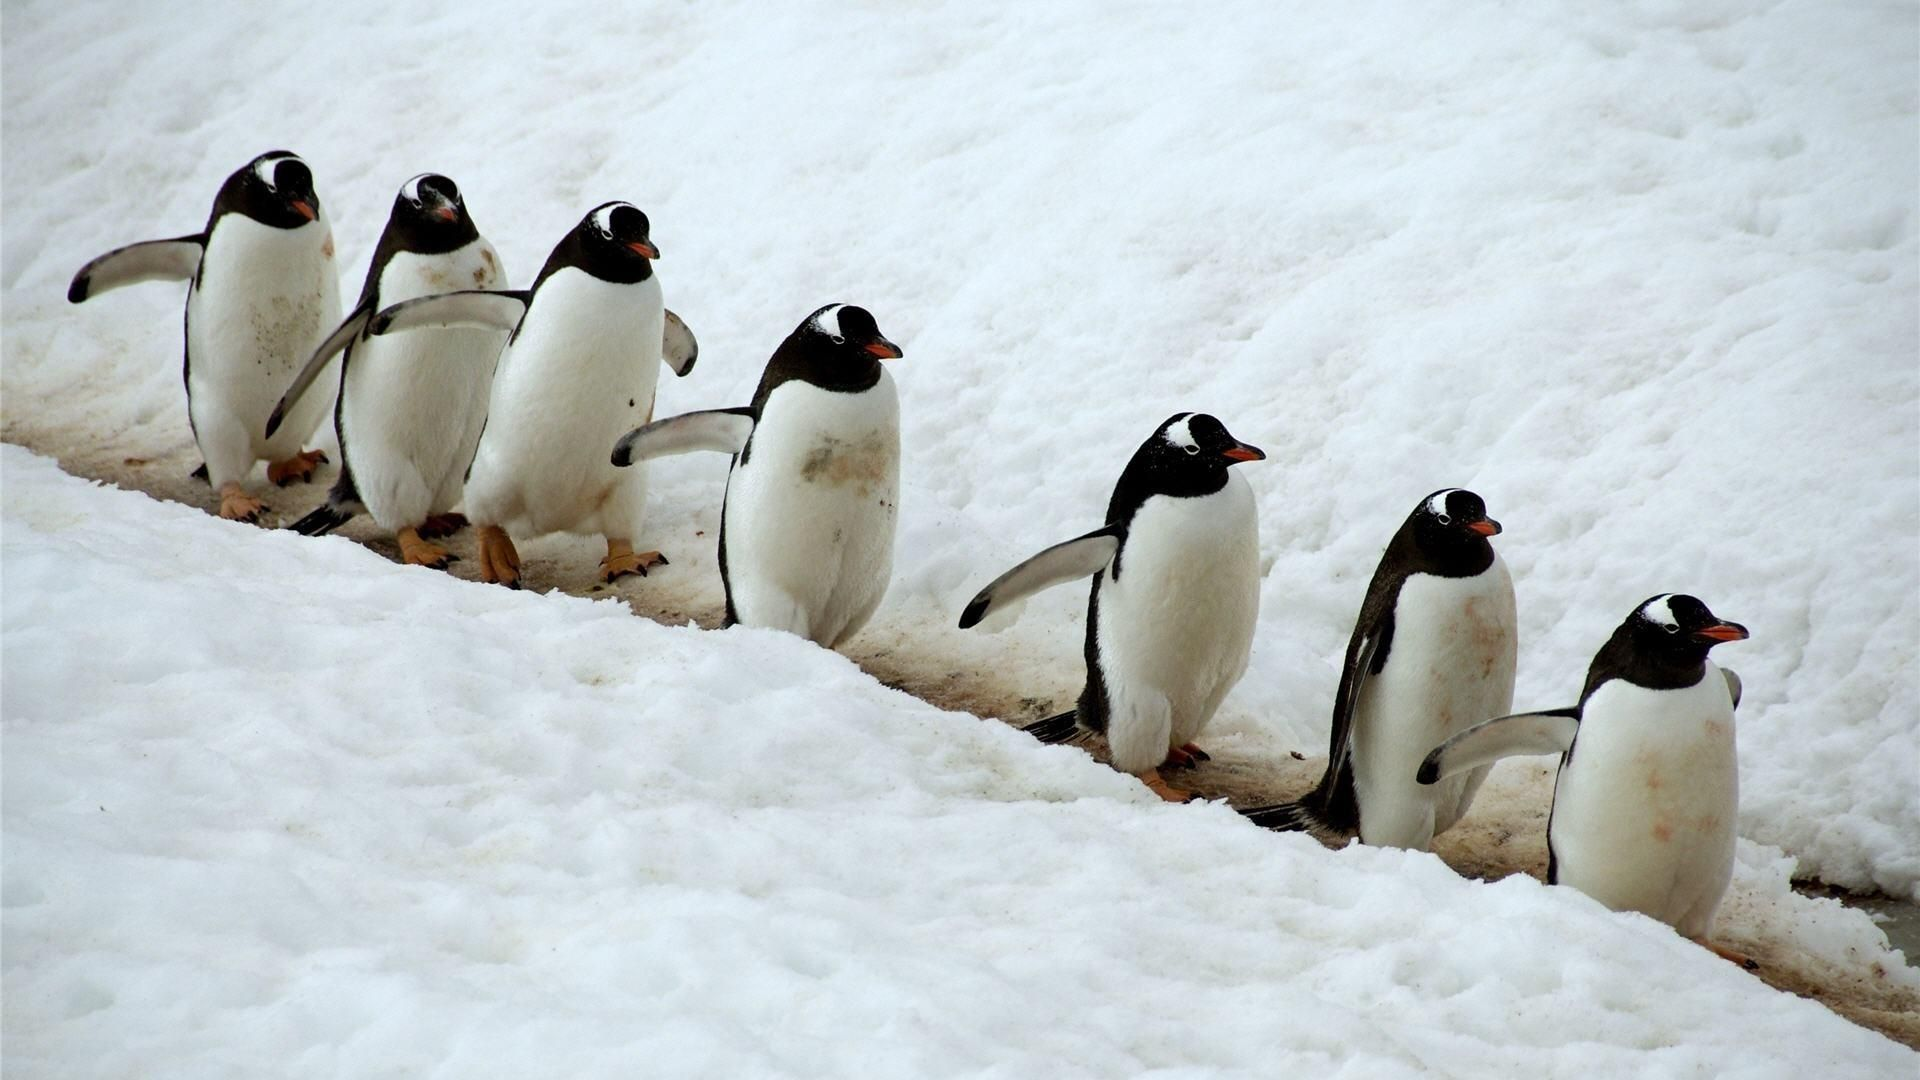 pitures of penguins